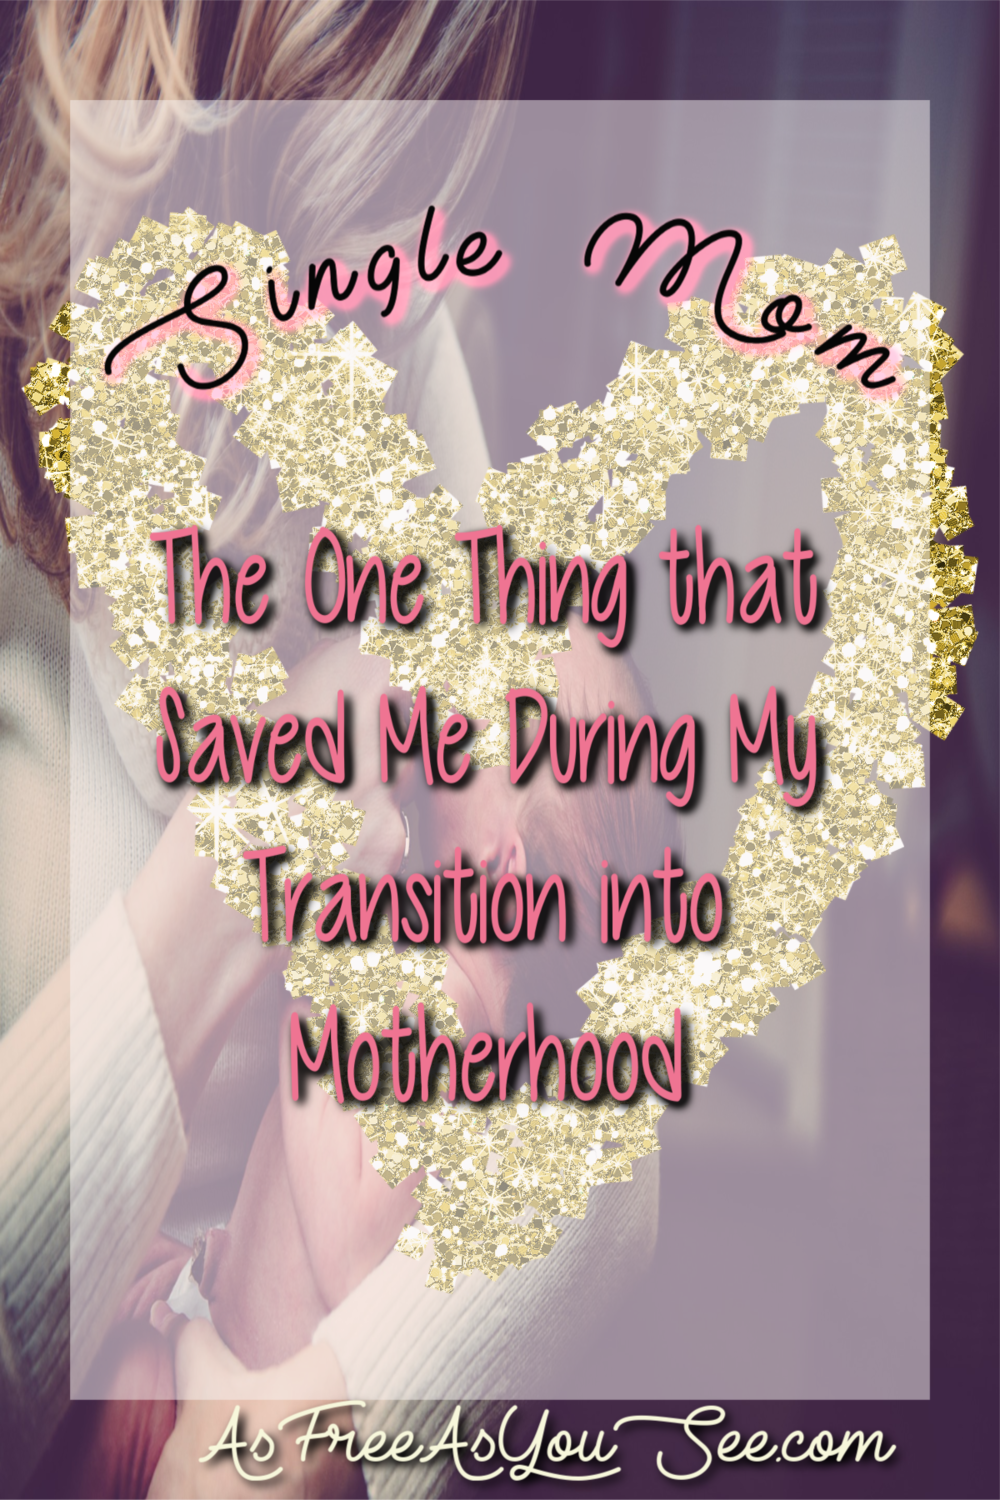 Single Mom: The One Thing that Saved Me During My Transition into Motherhood